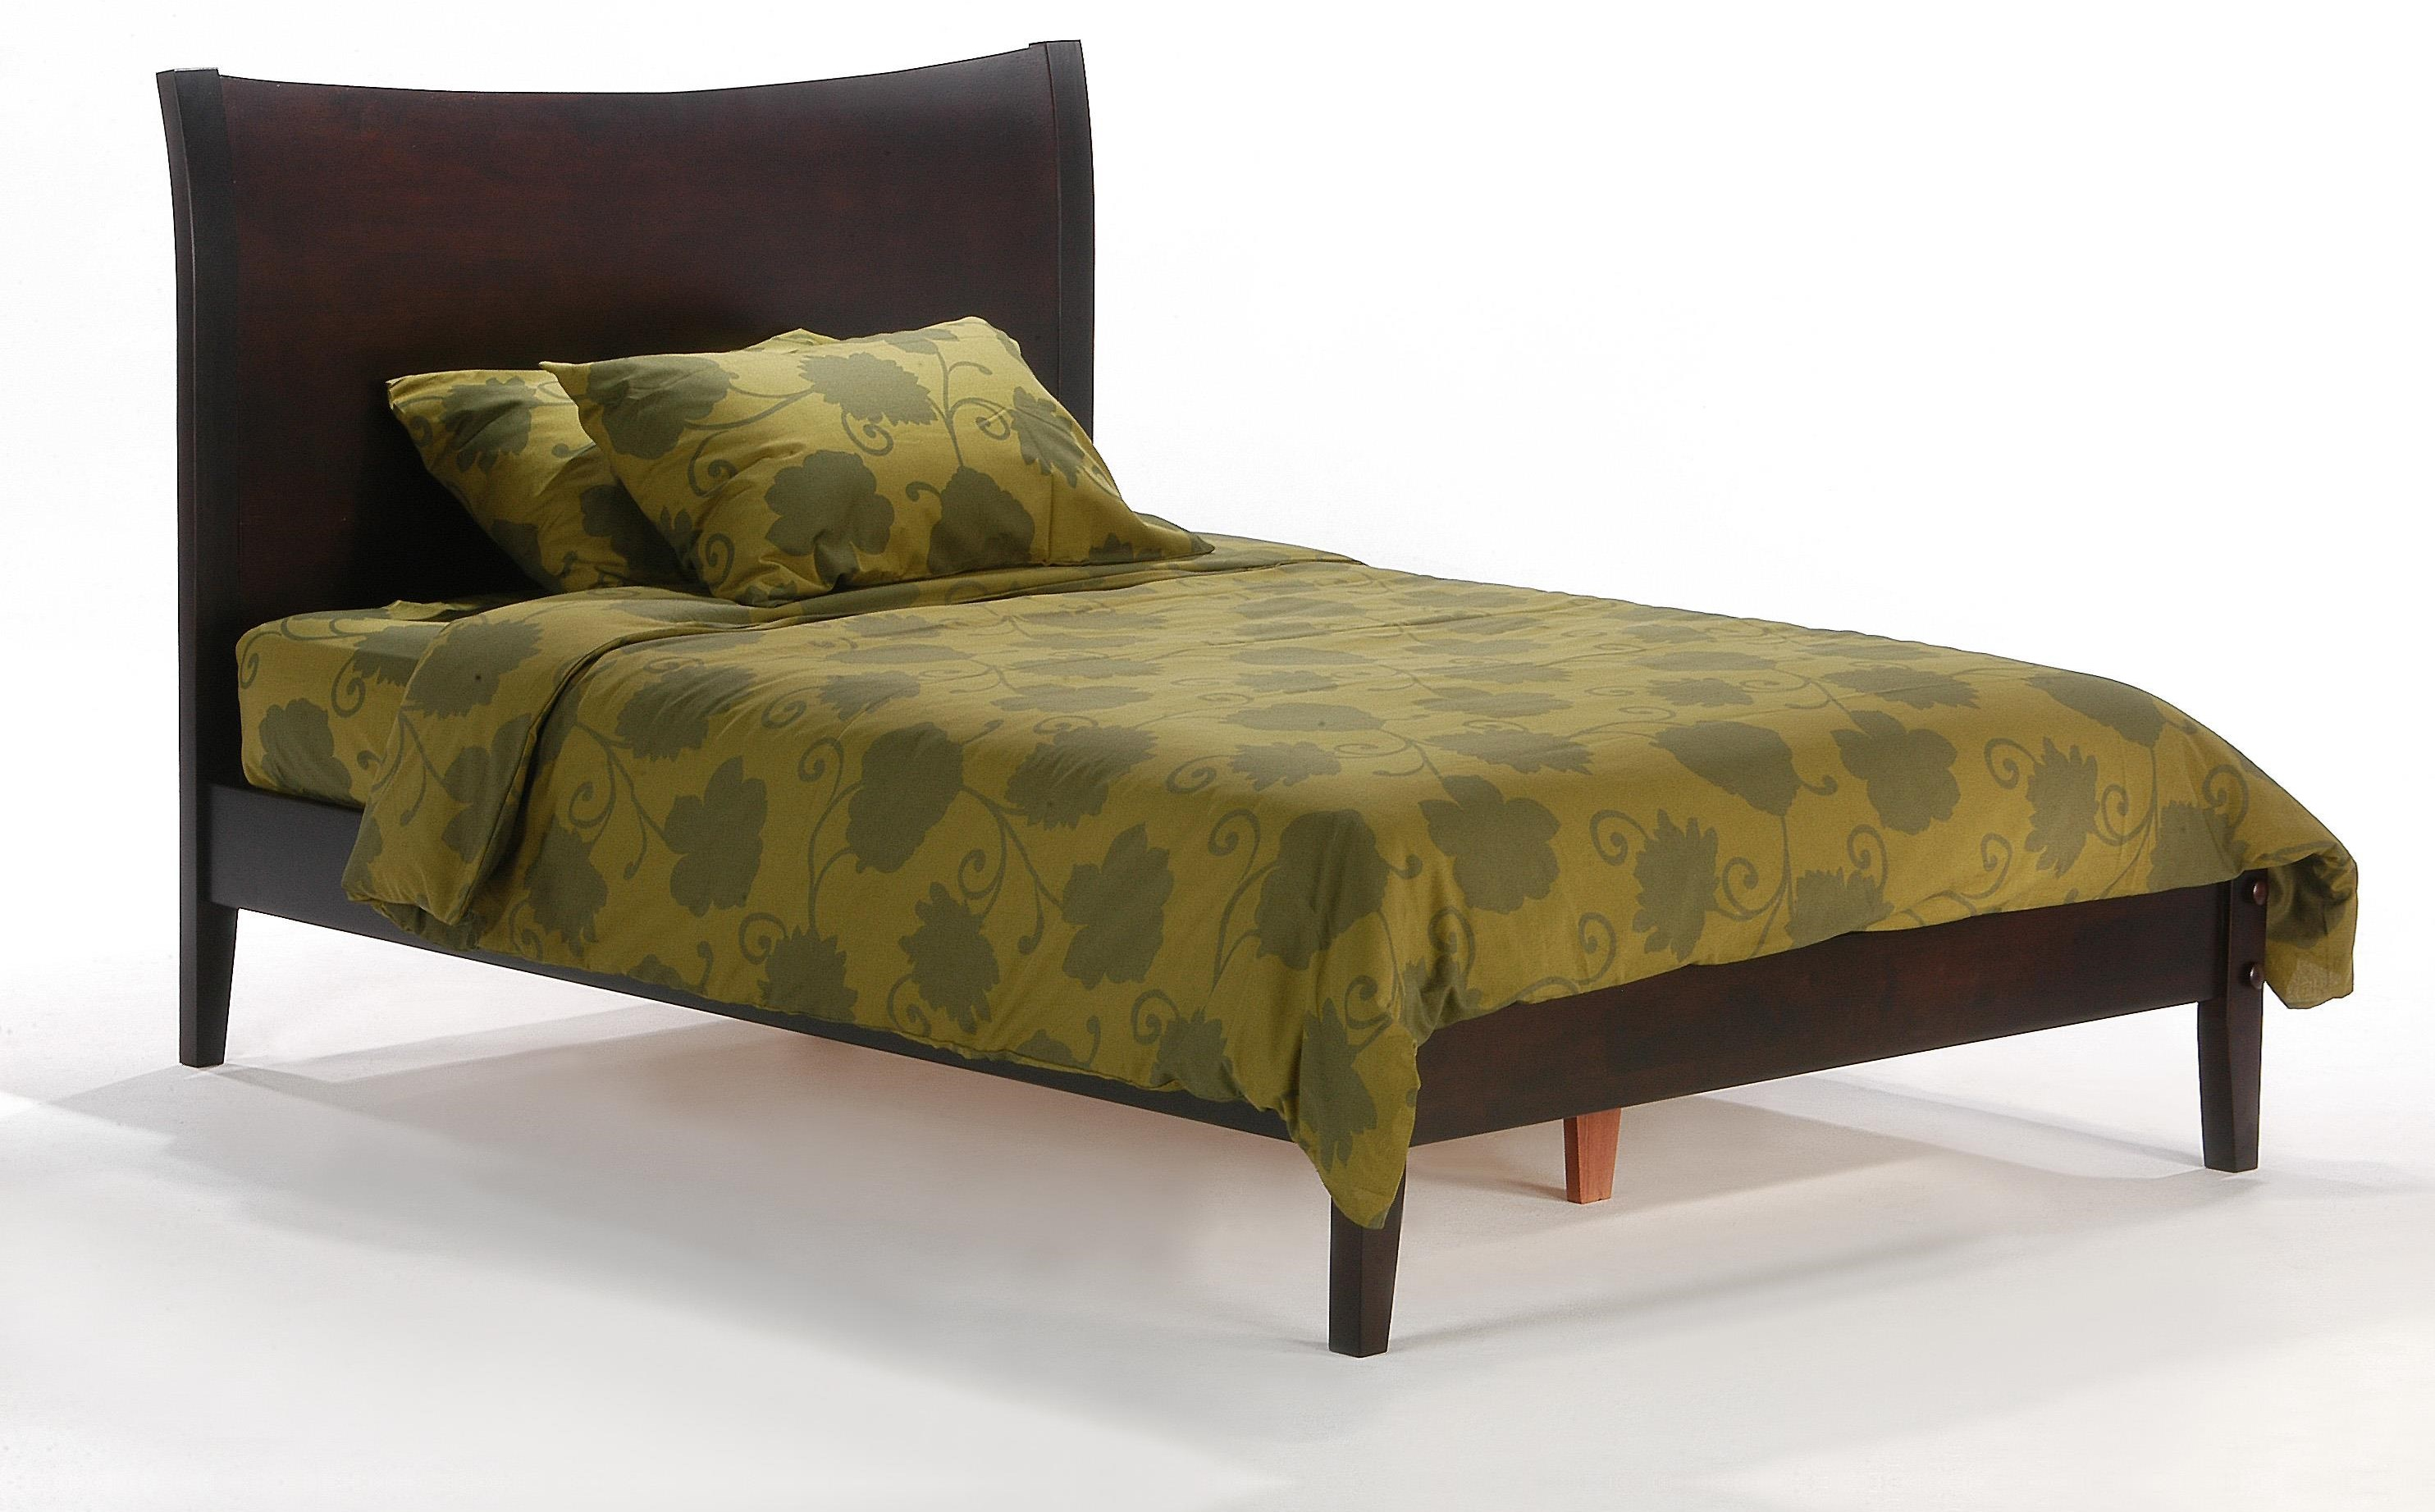 Blackpepper - Chocolate Twin Bed by Pacific Manufacturing at SlumberWorld